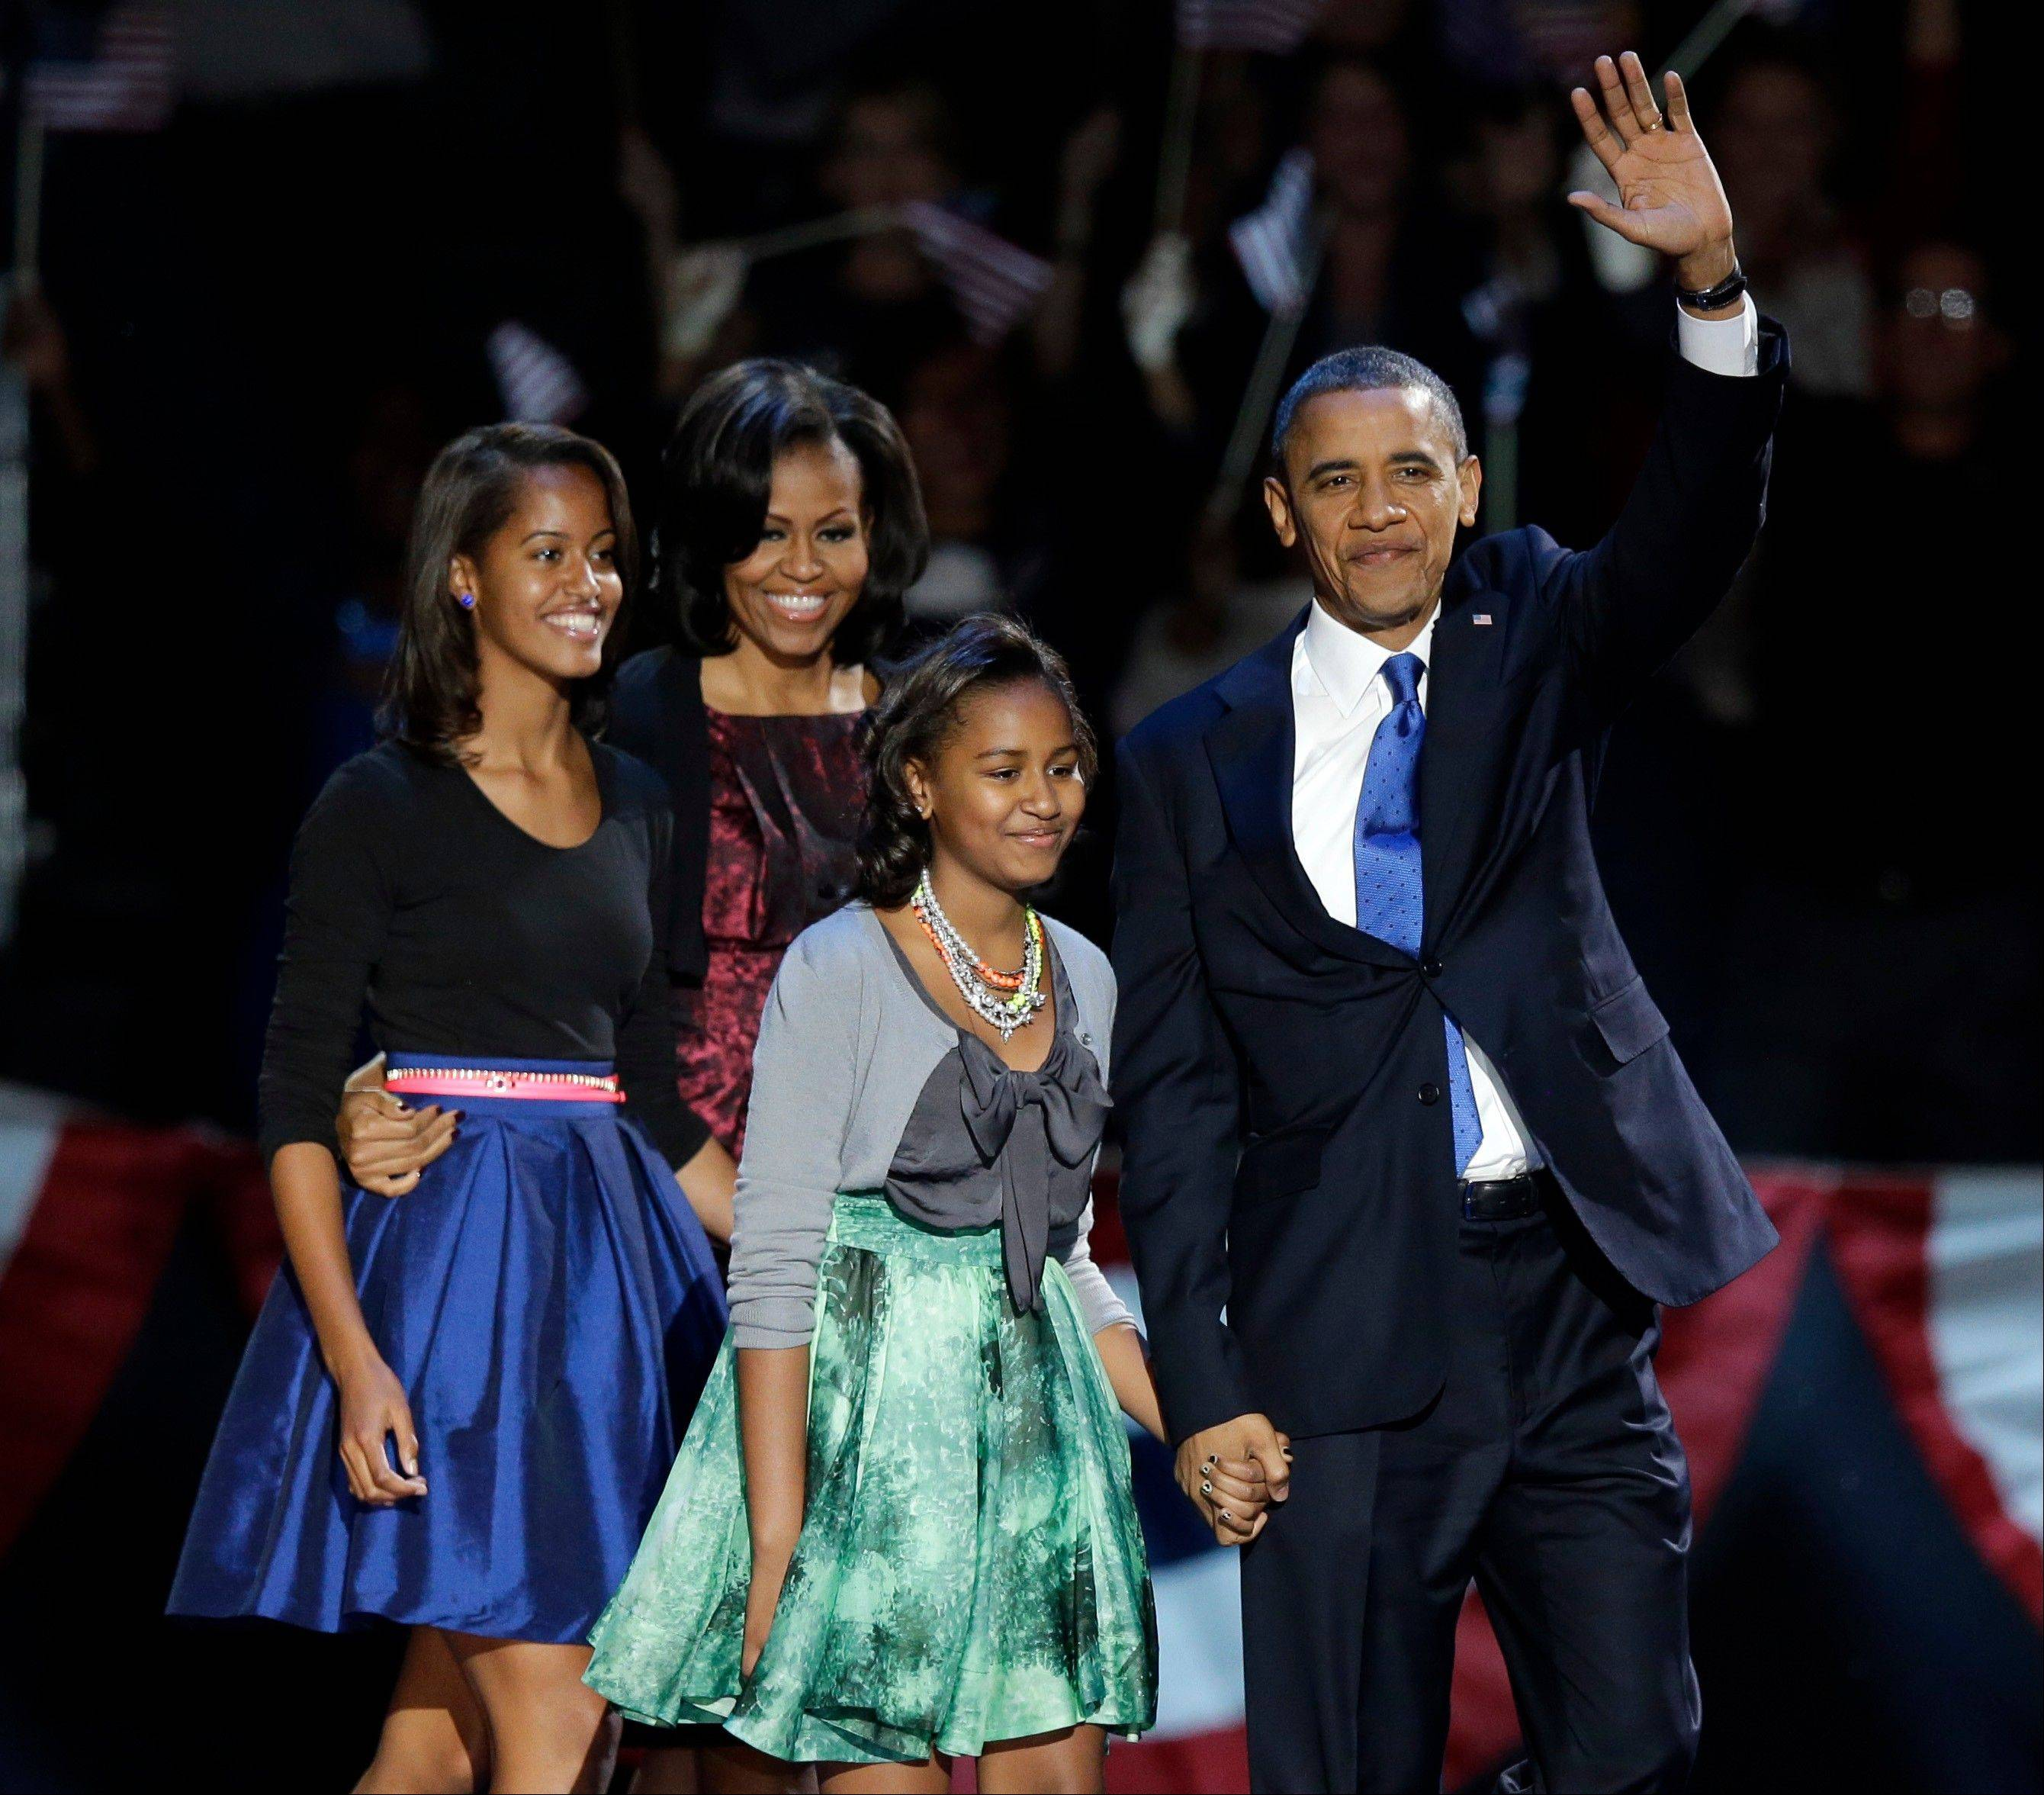 President Barack Obama waves as he walks onstage with first lady Michelle Obama and daughters Malia and Sasha at his election night party Wednesday in Chicago.